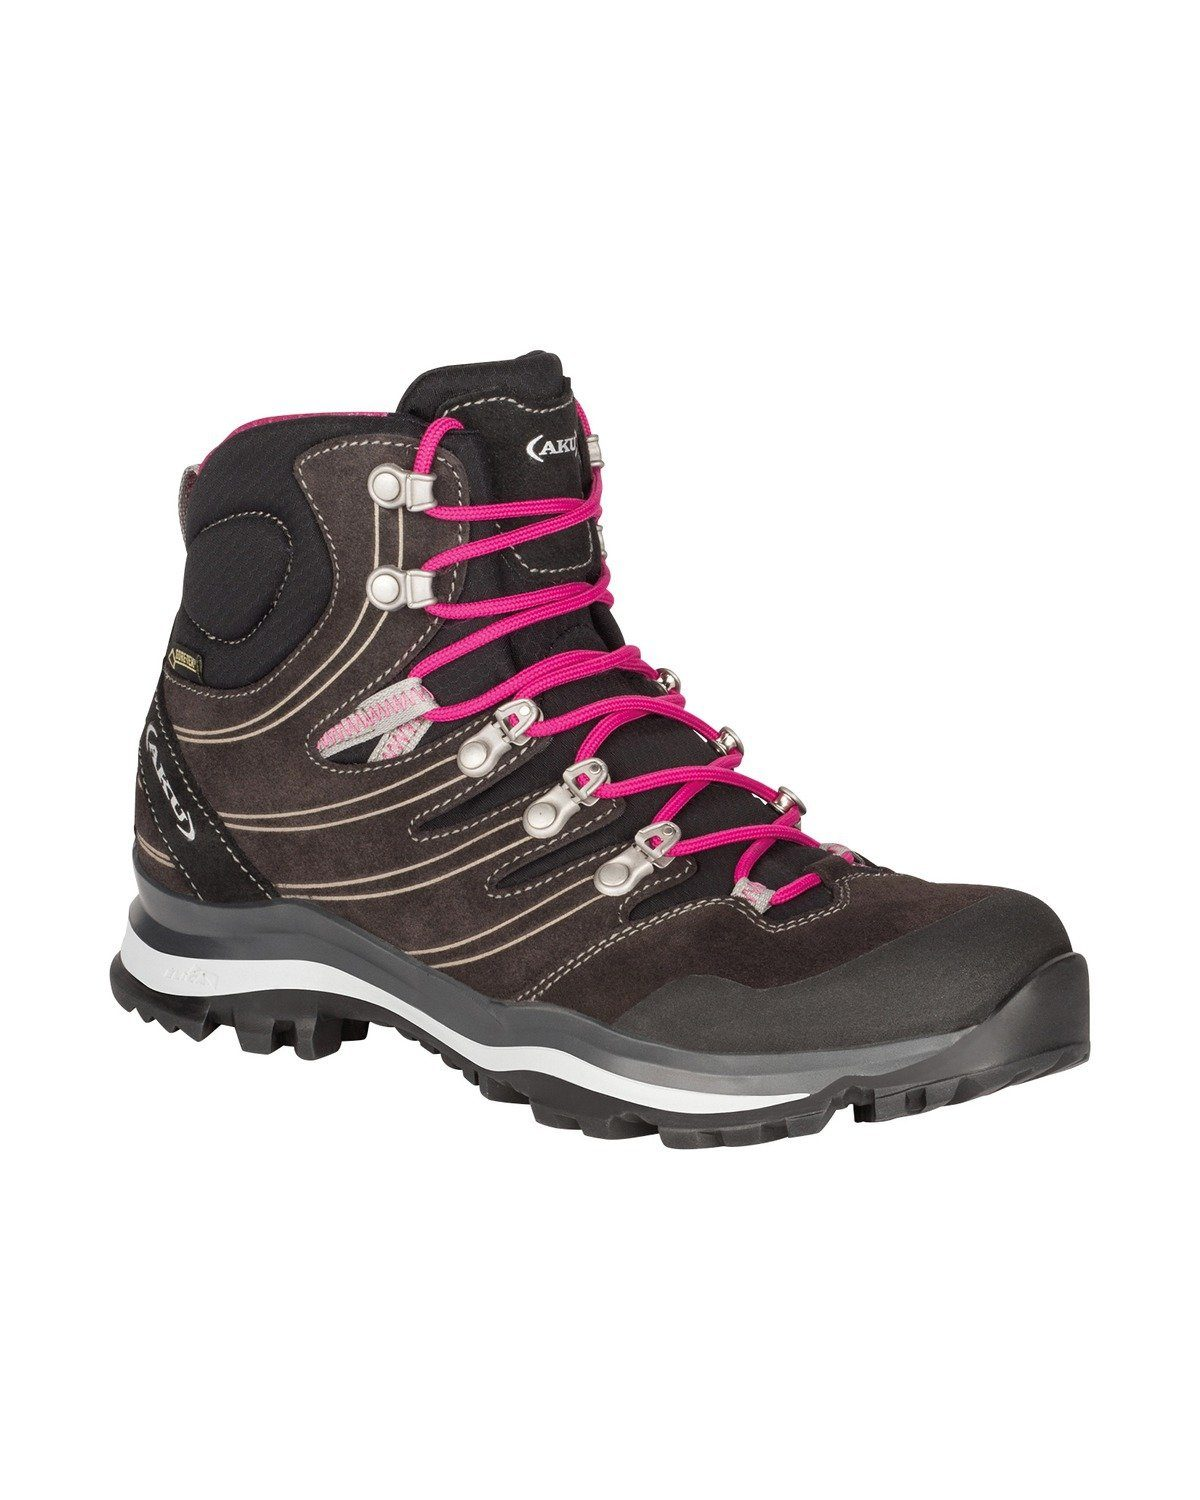 AKU Trekkingstiefel Alterra GTX® online kaufen  anthrazit#ft5_slash#magenta